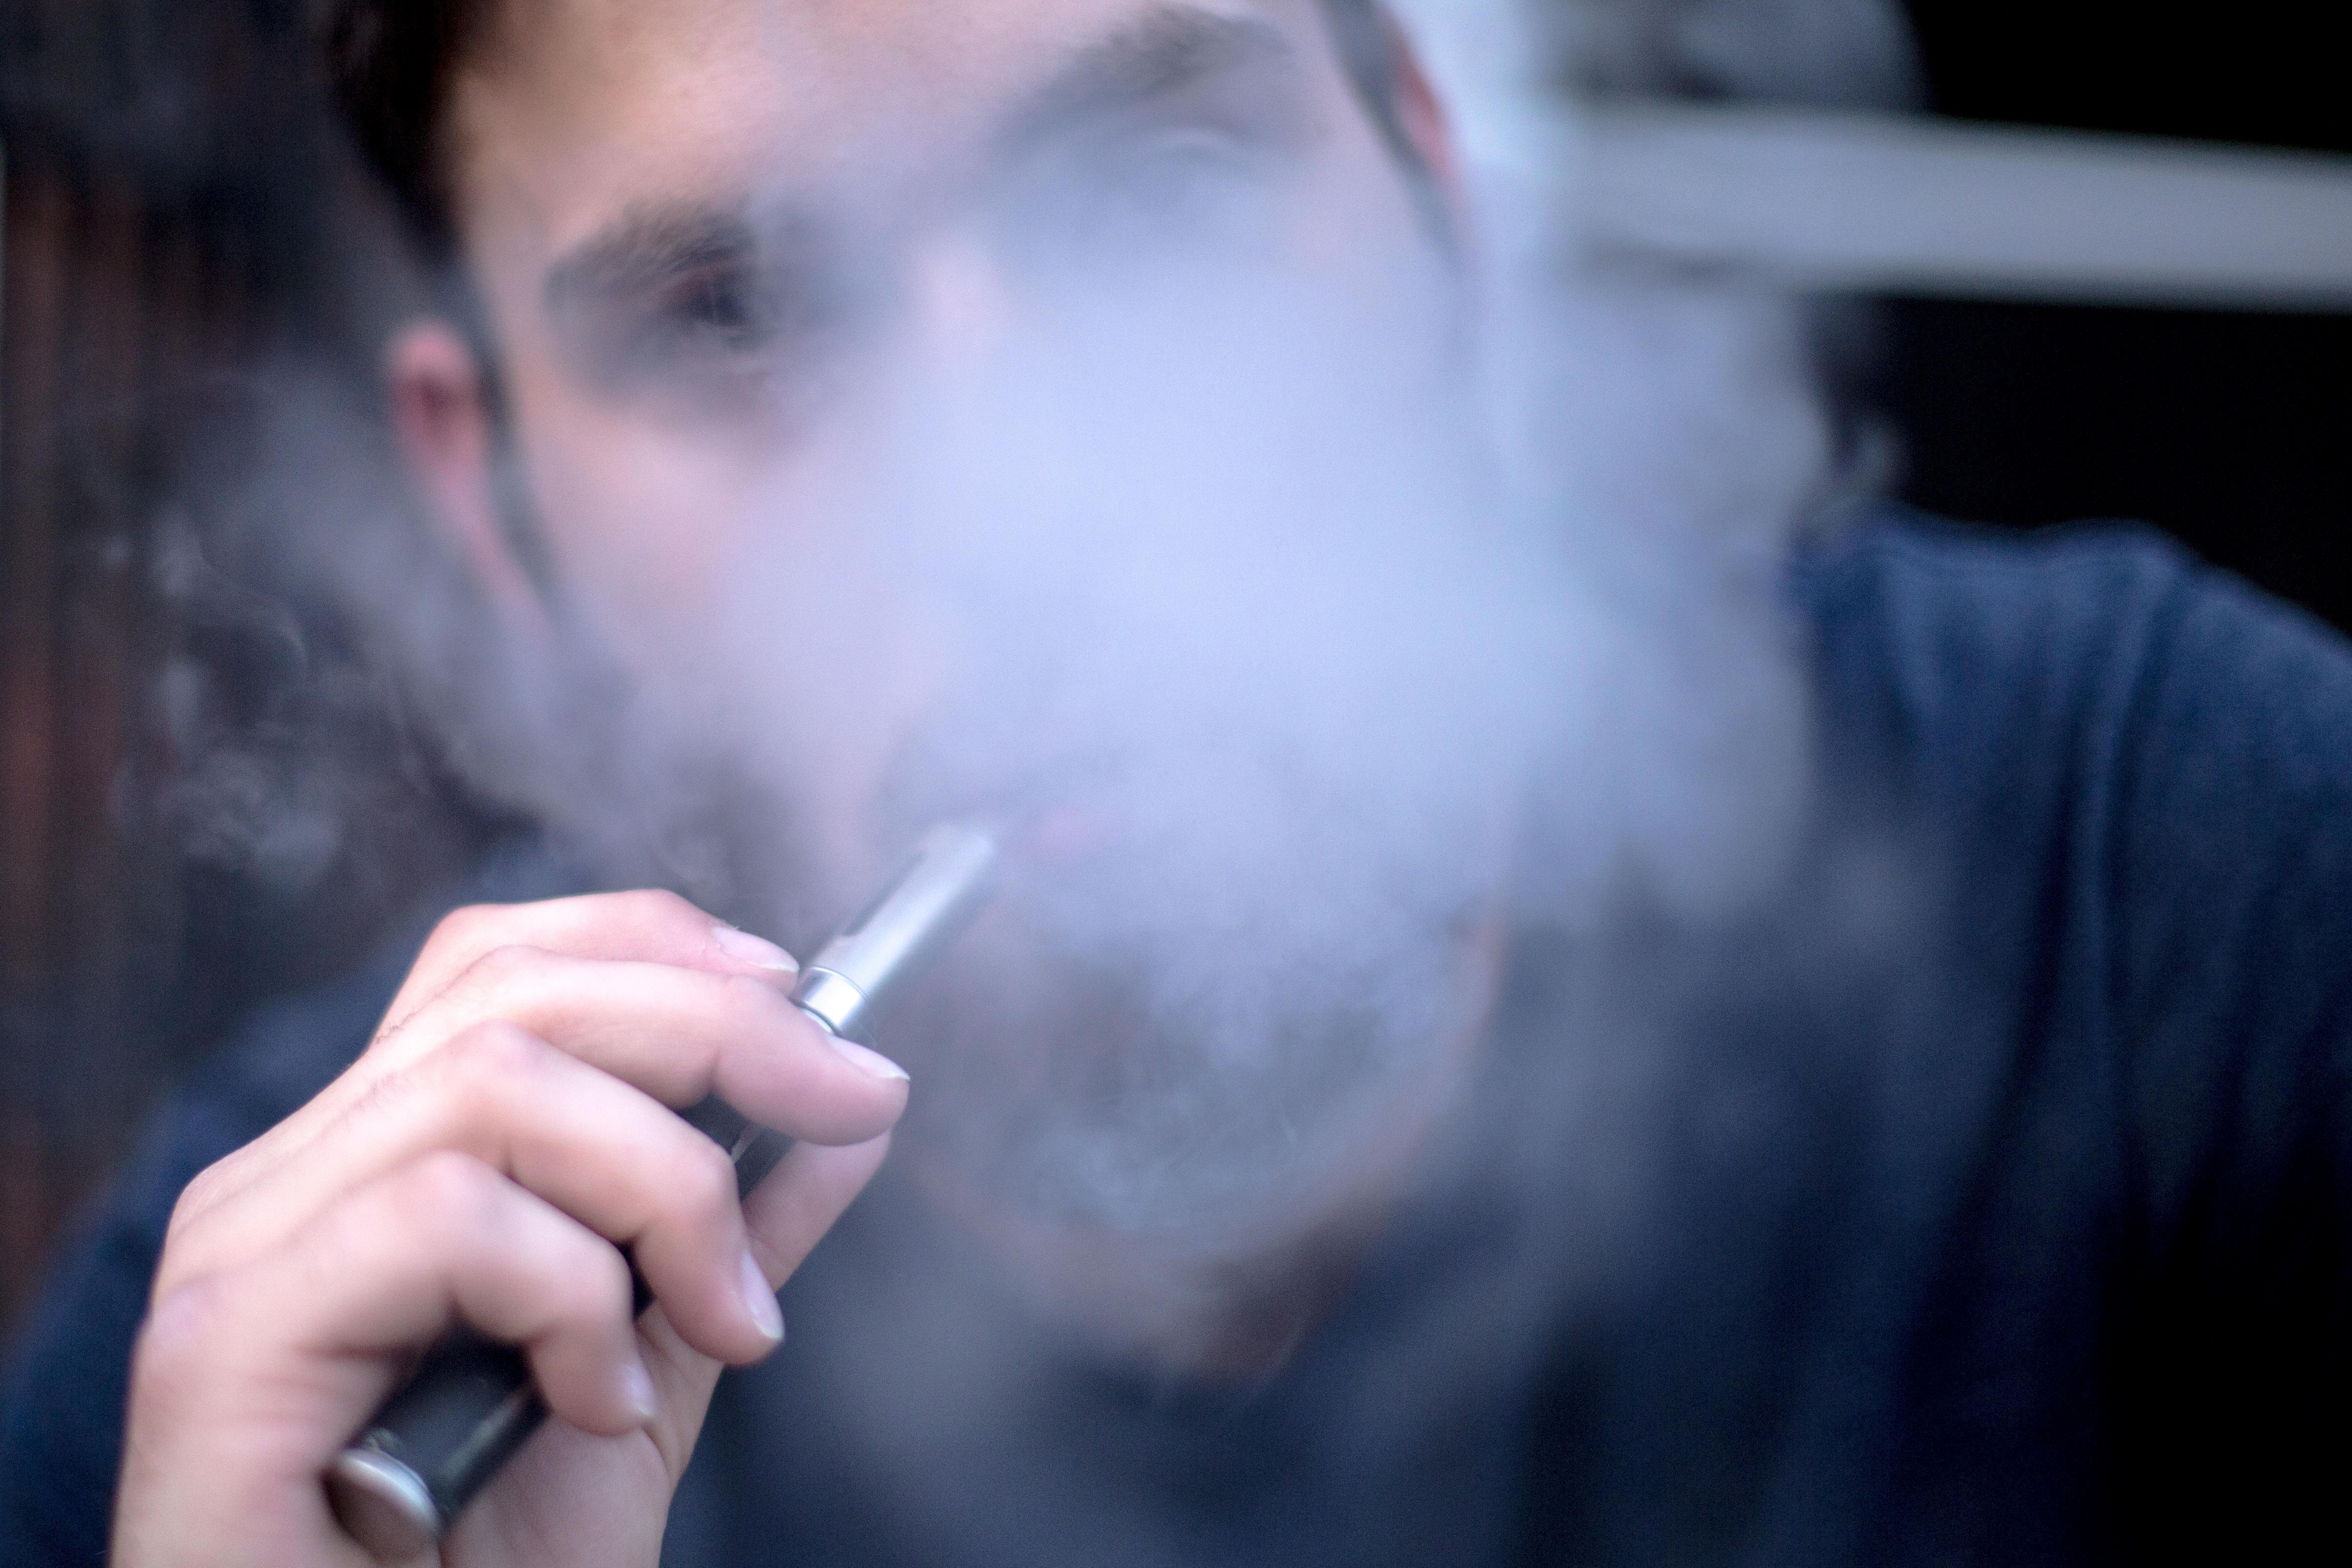 New Jersey police warn parents about THC drug-laced vape pens - CBS News